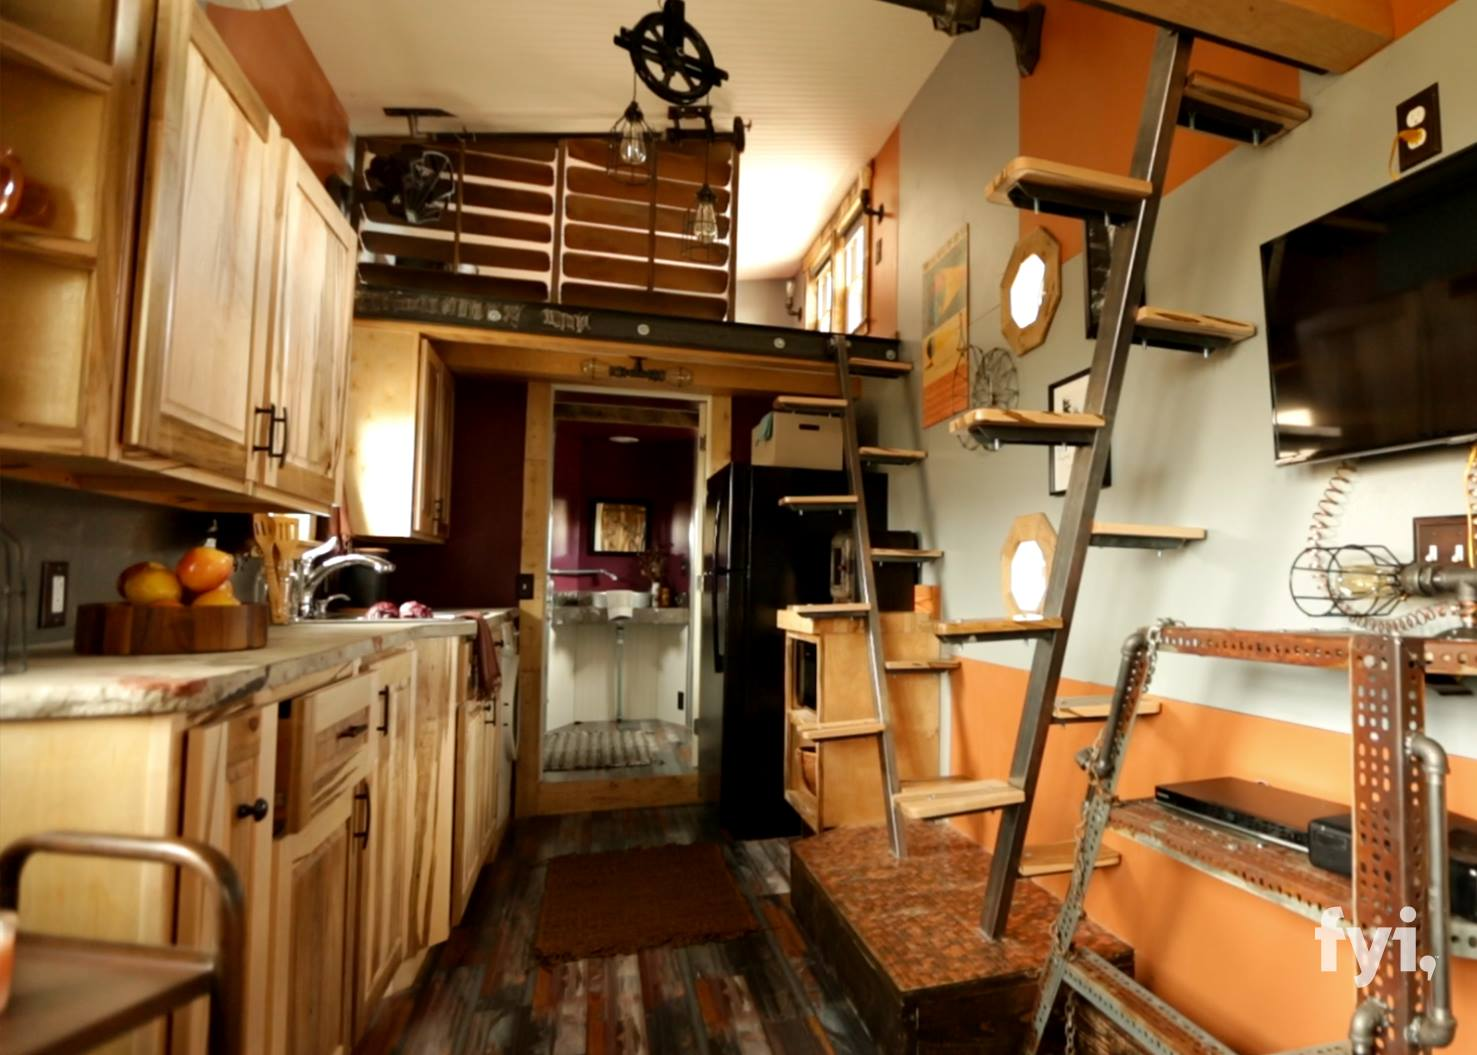 Steampunk Adventure Home 340 Sq Ft  The Homes of Tiny House Nation